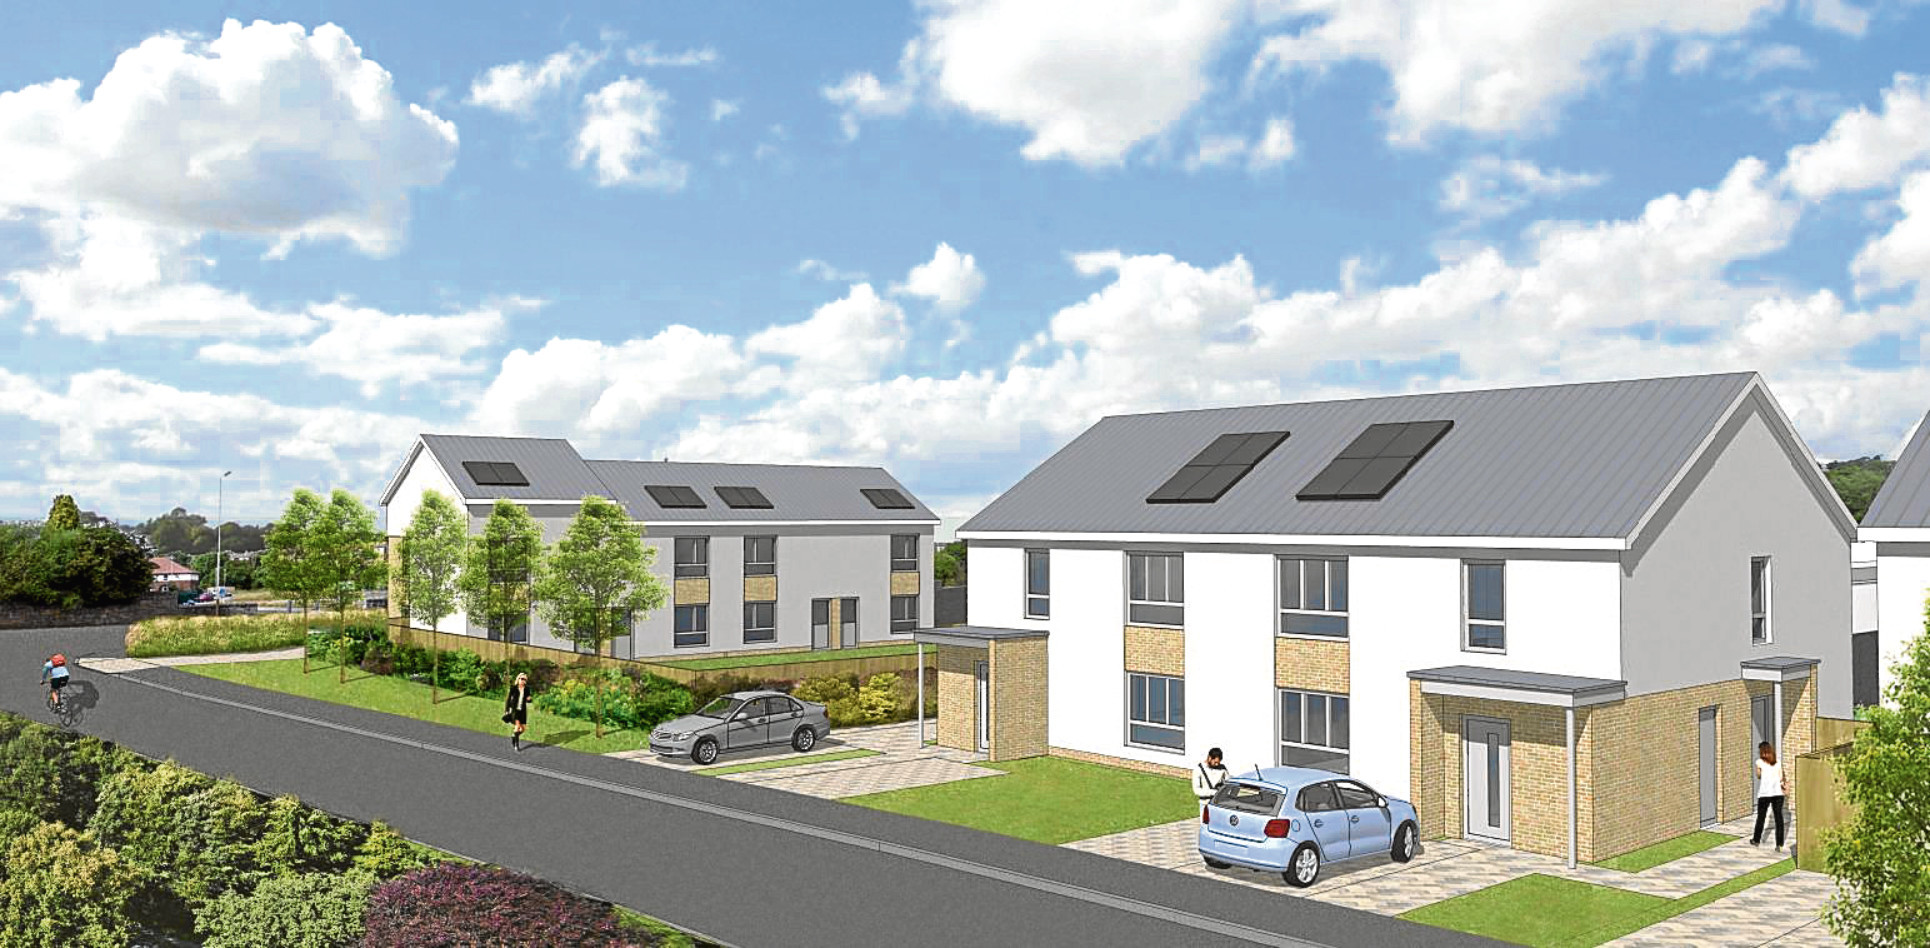 A 3D image of how the new homes could look.